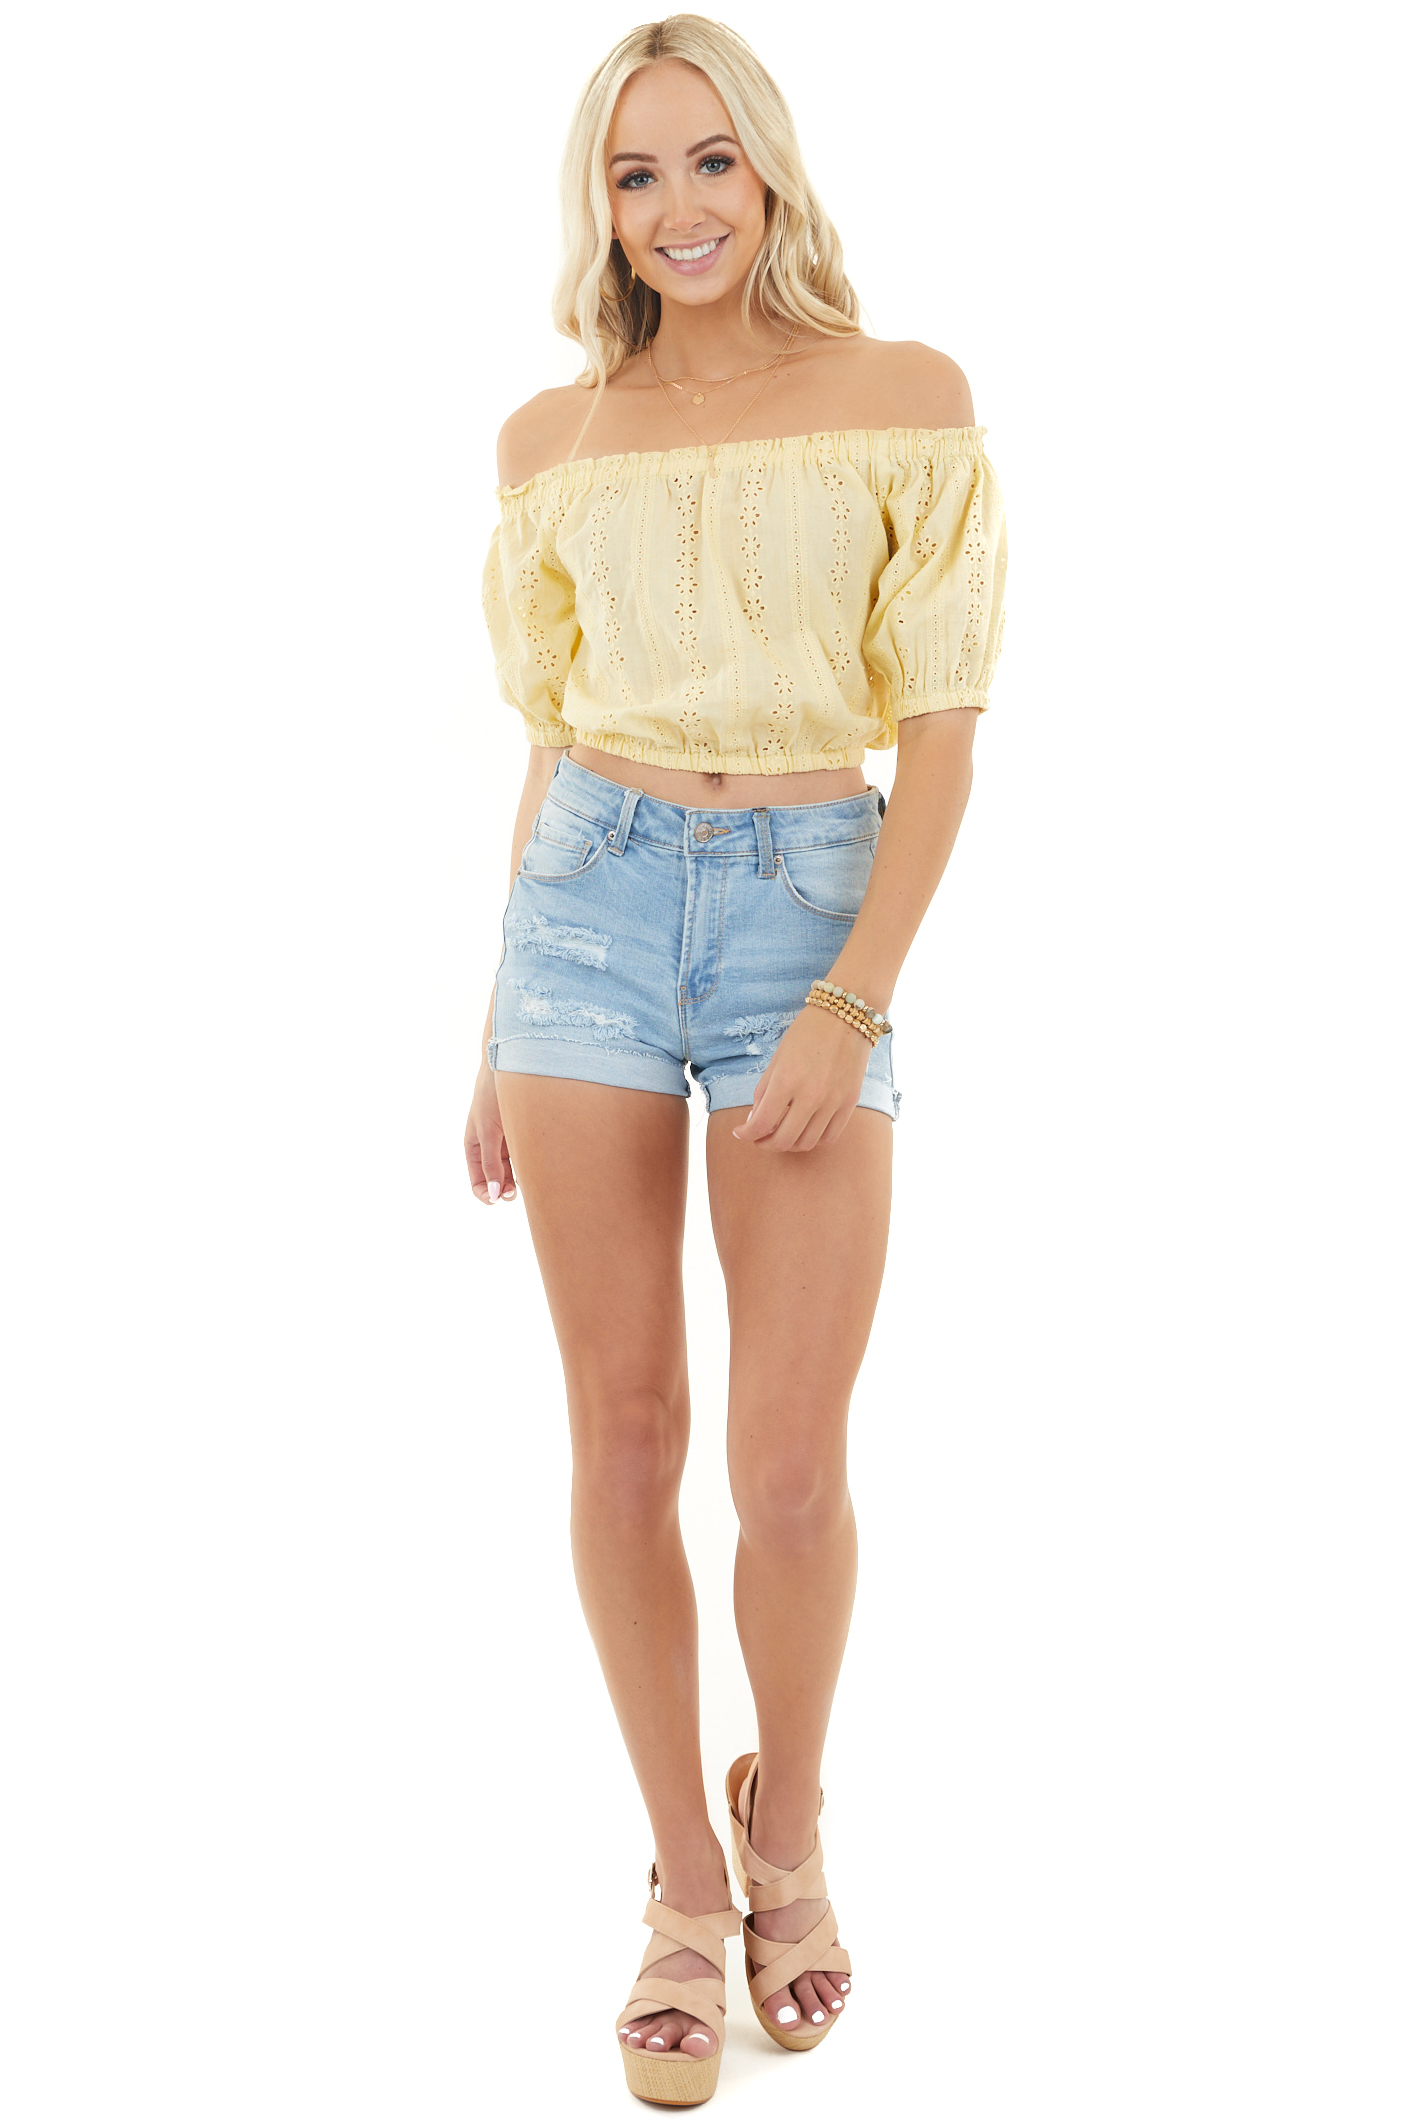 Banana Yellow Off Shoulder Crop Top with Eyelet Lace